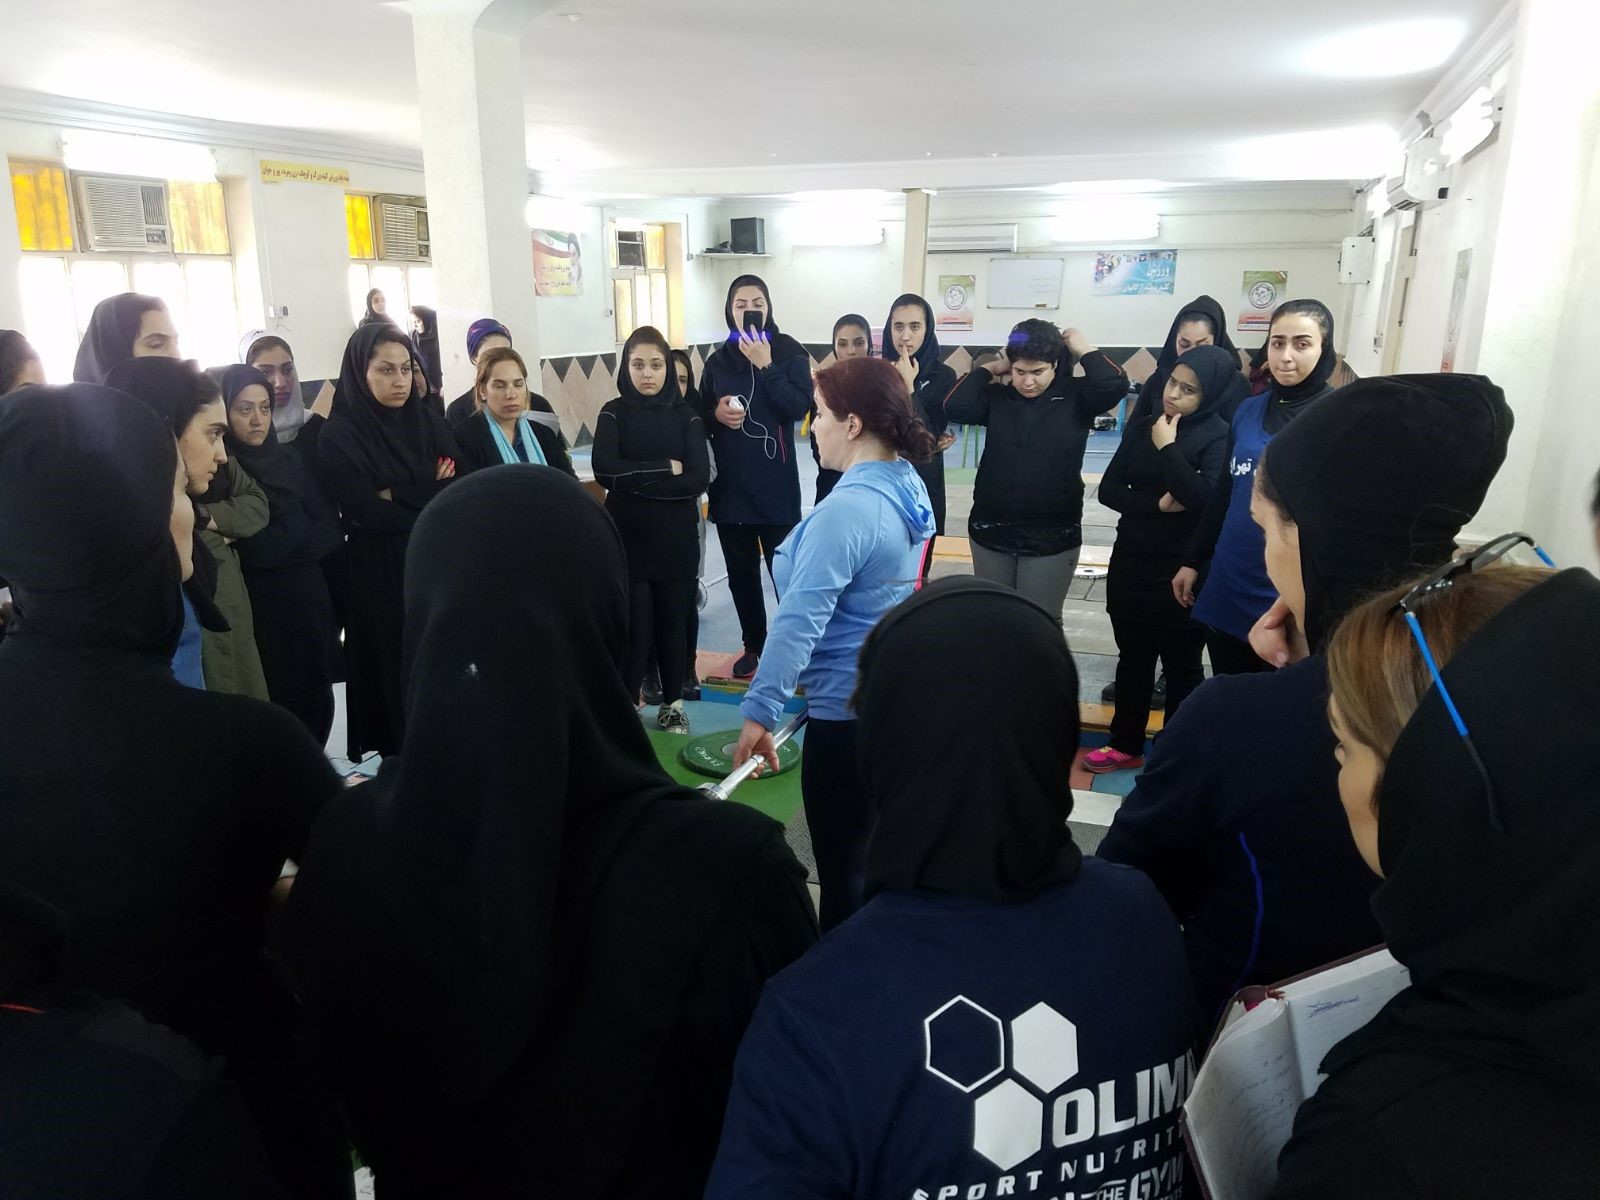 The IWF visited a training camp for female weightlifters in Iran ©IWF